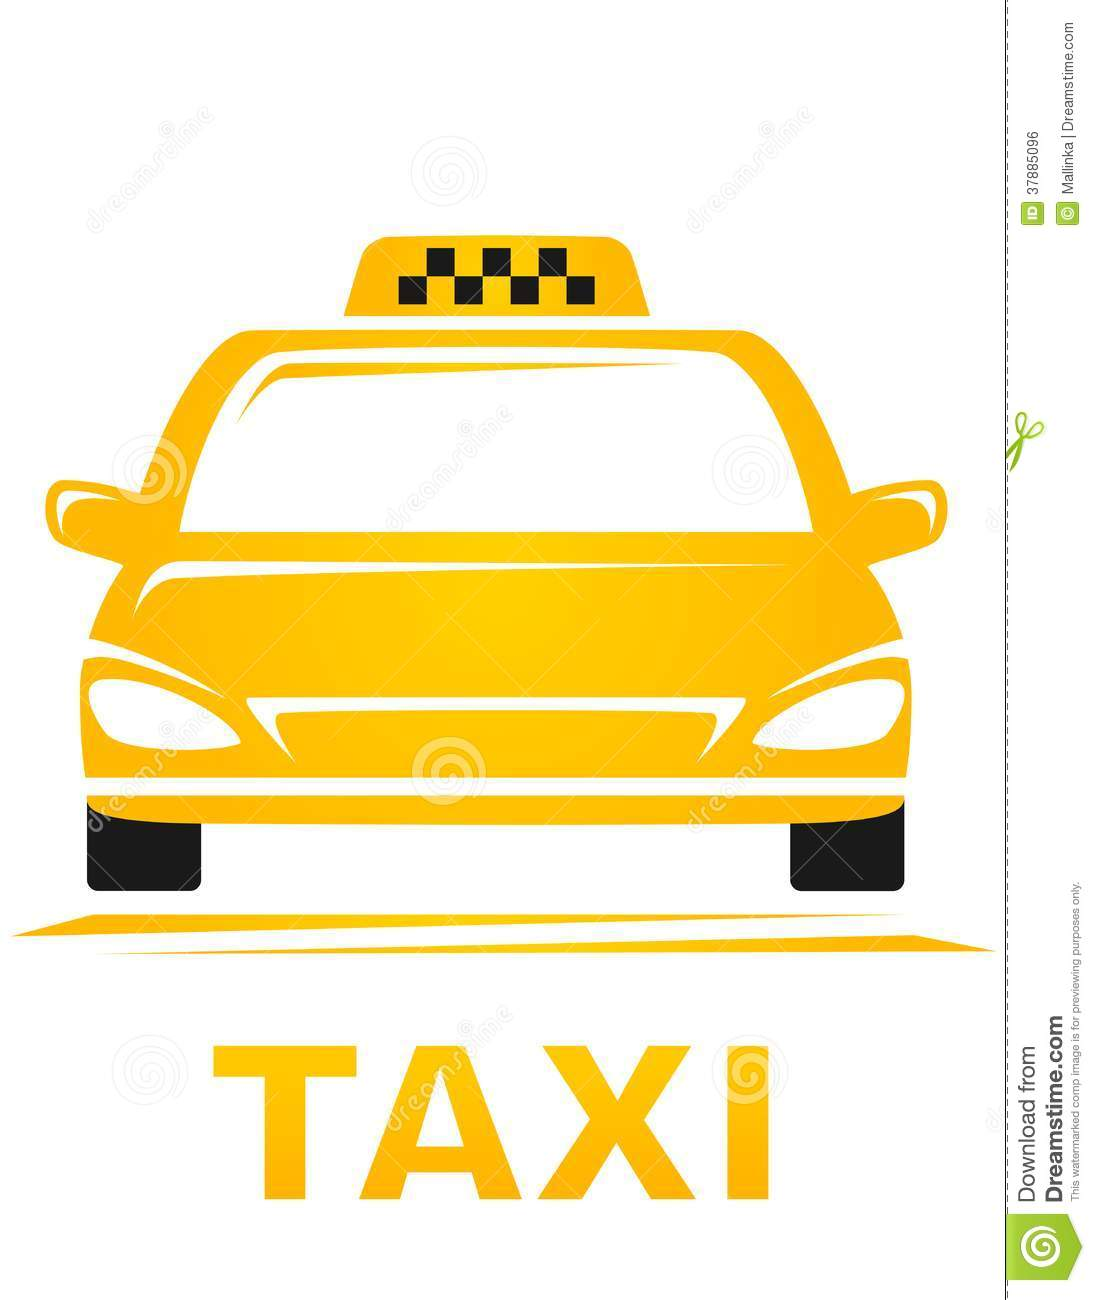 Gele taxiauto